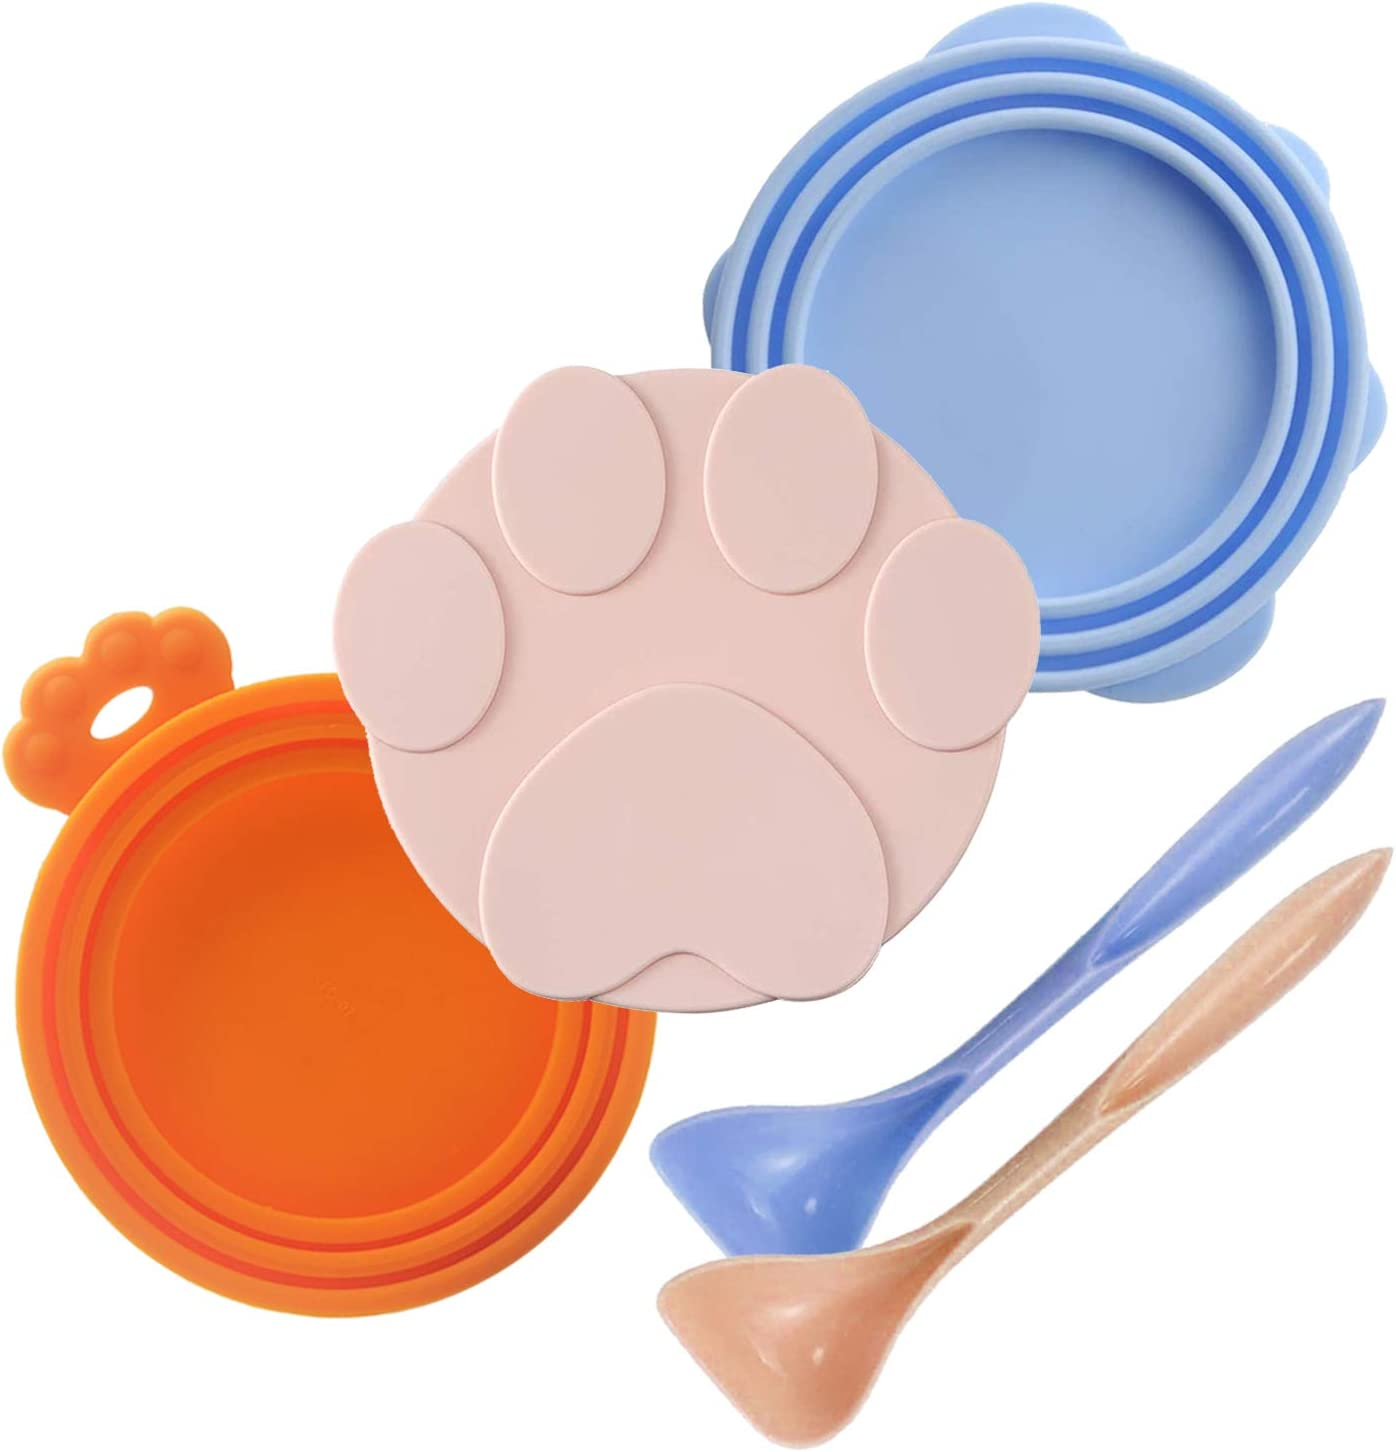 DLDER 3 Pieces Can Lids Pet Food Can Cover Set with 2 Spoons, Universal Silicone Cat Food Can Lid,1 Fit 3 Standard Size Cat Food Lids for Dog Food, Dishwasher Safe(Blue, Pink, and Orange)